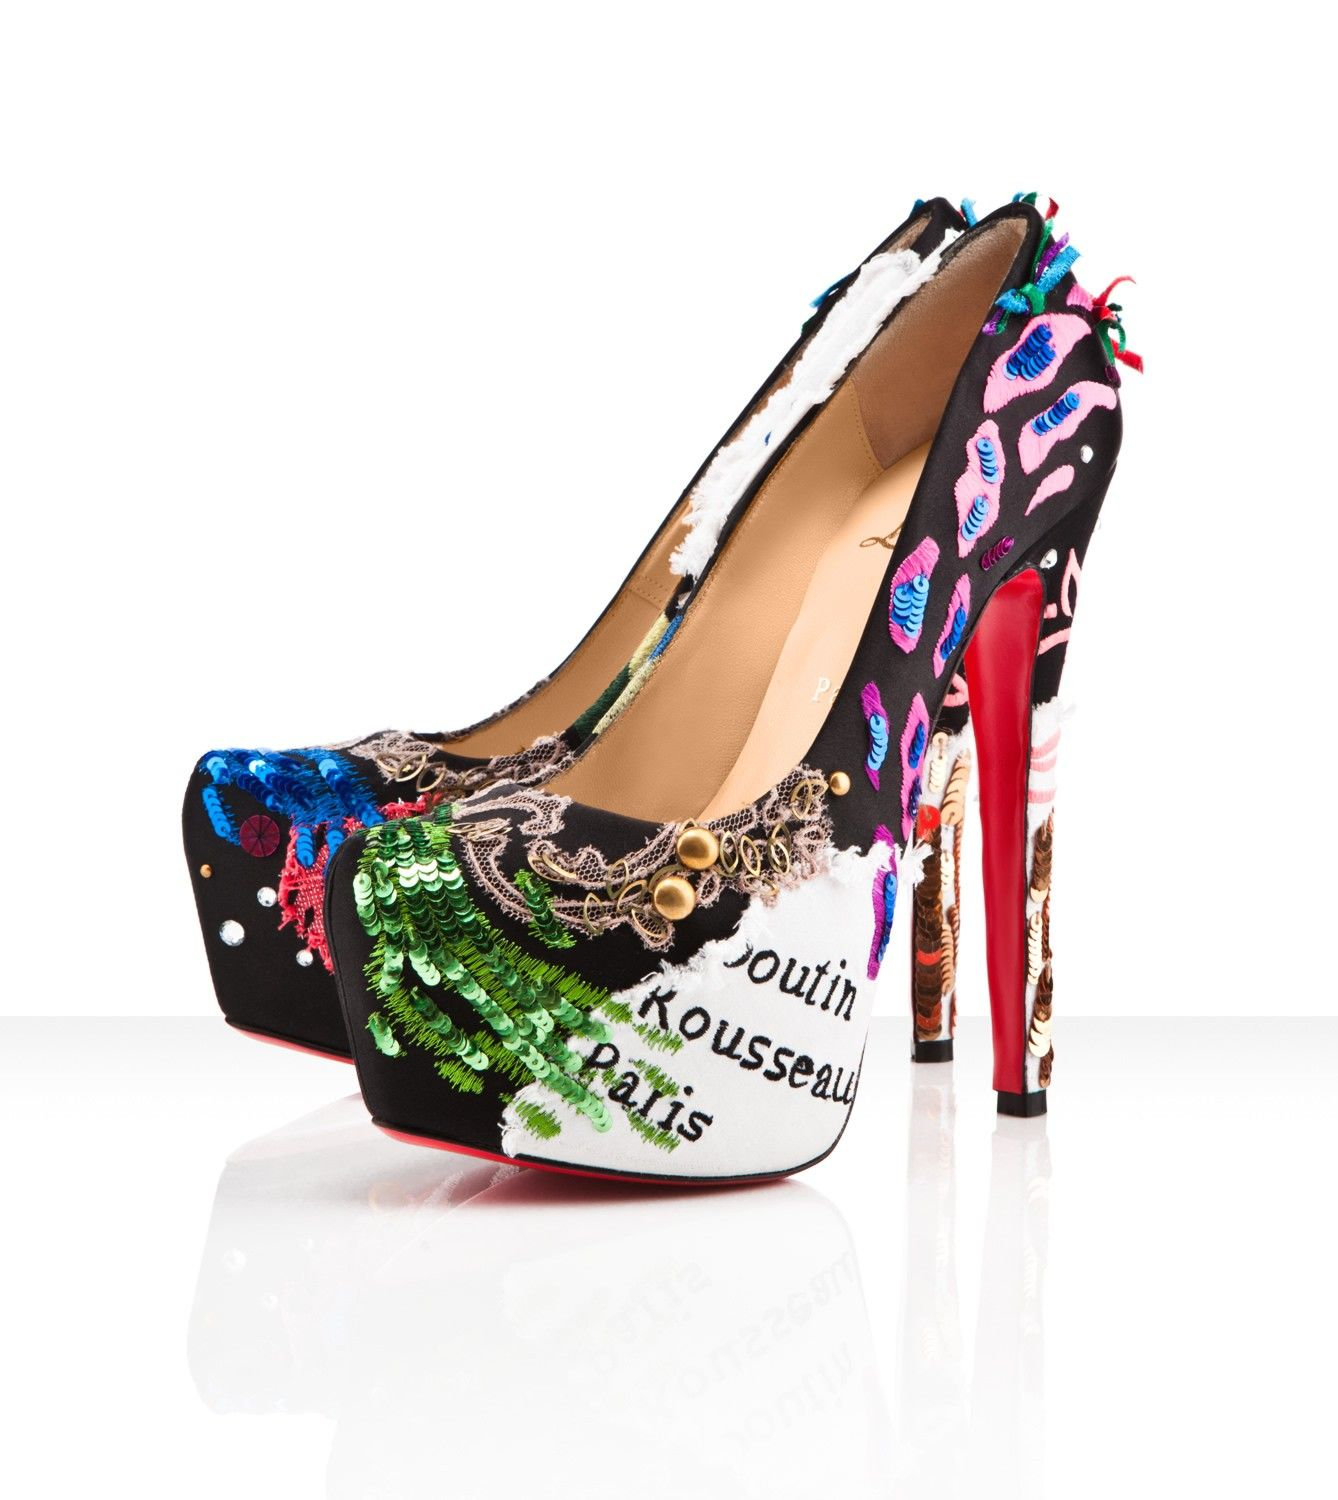 Christian Louboutin Daffodile Brodee 160mm (6.3 inch heel) in Multicolor  Satin. $2295